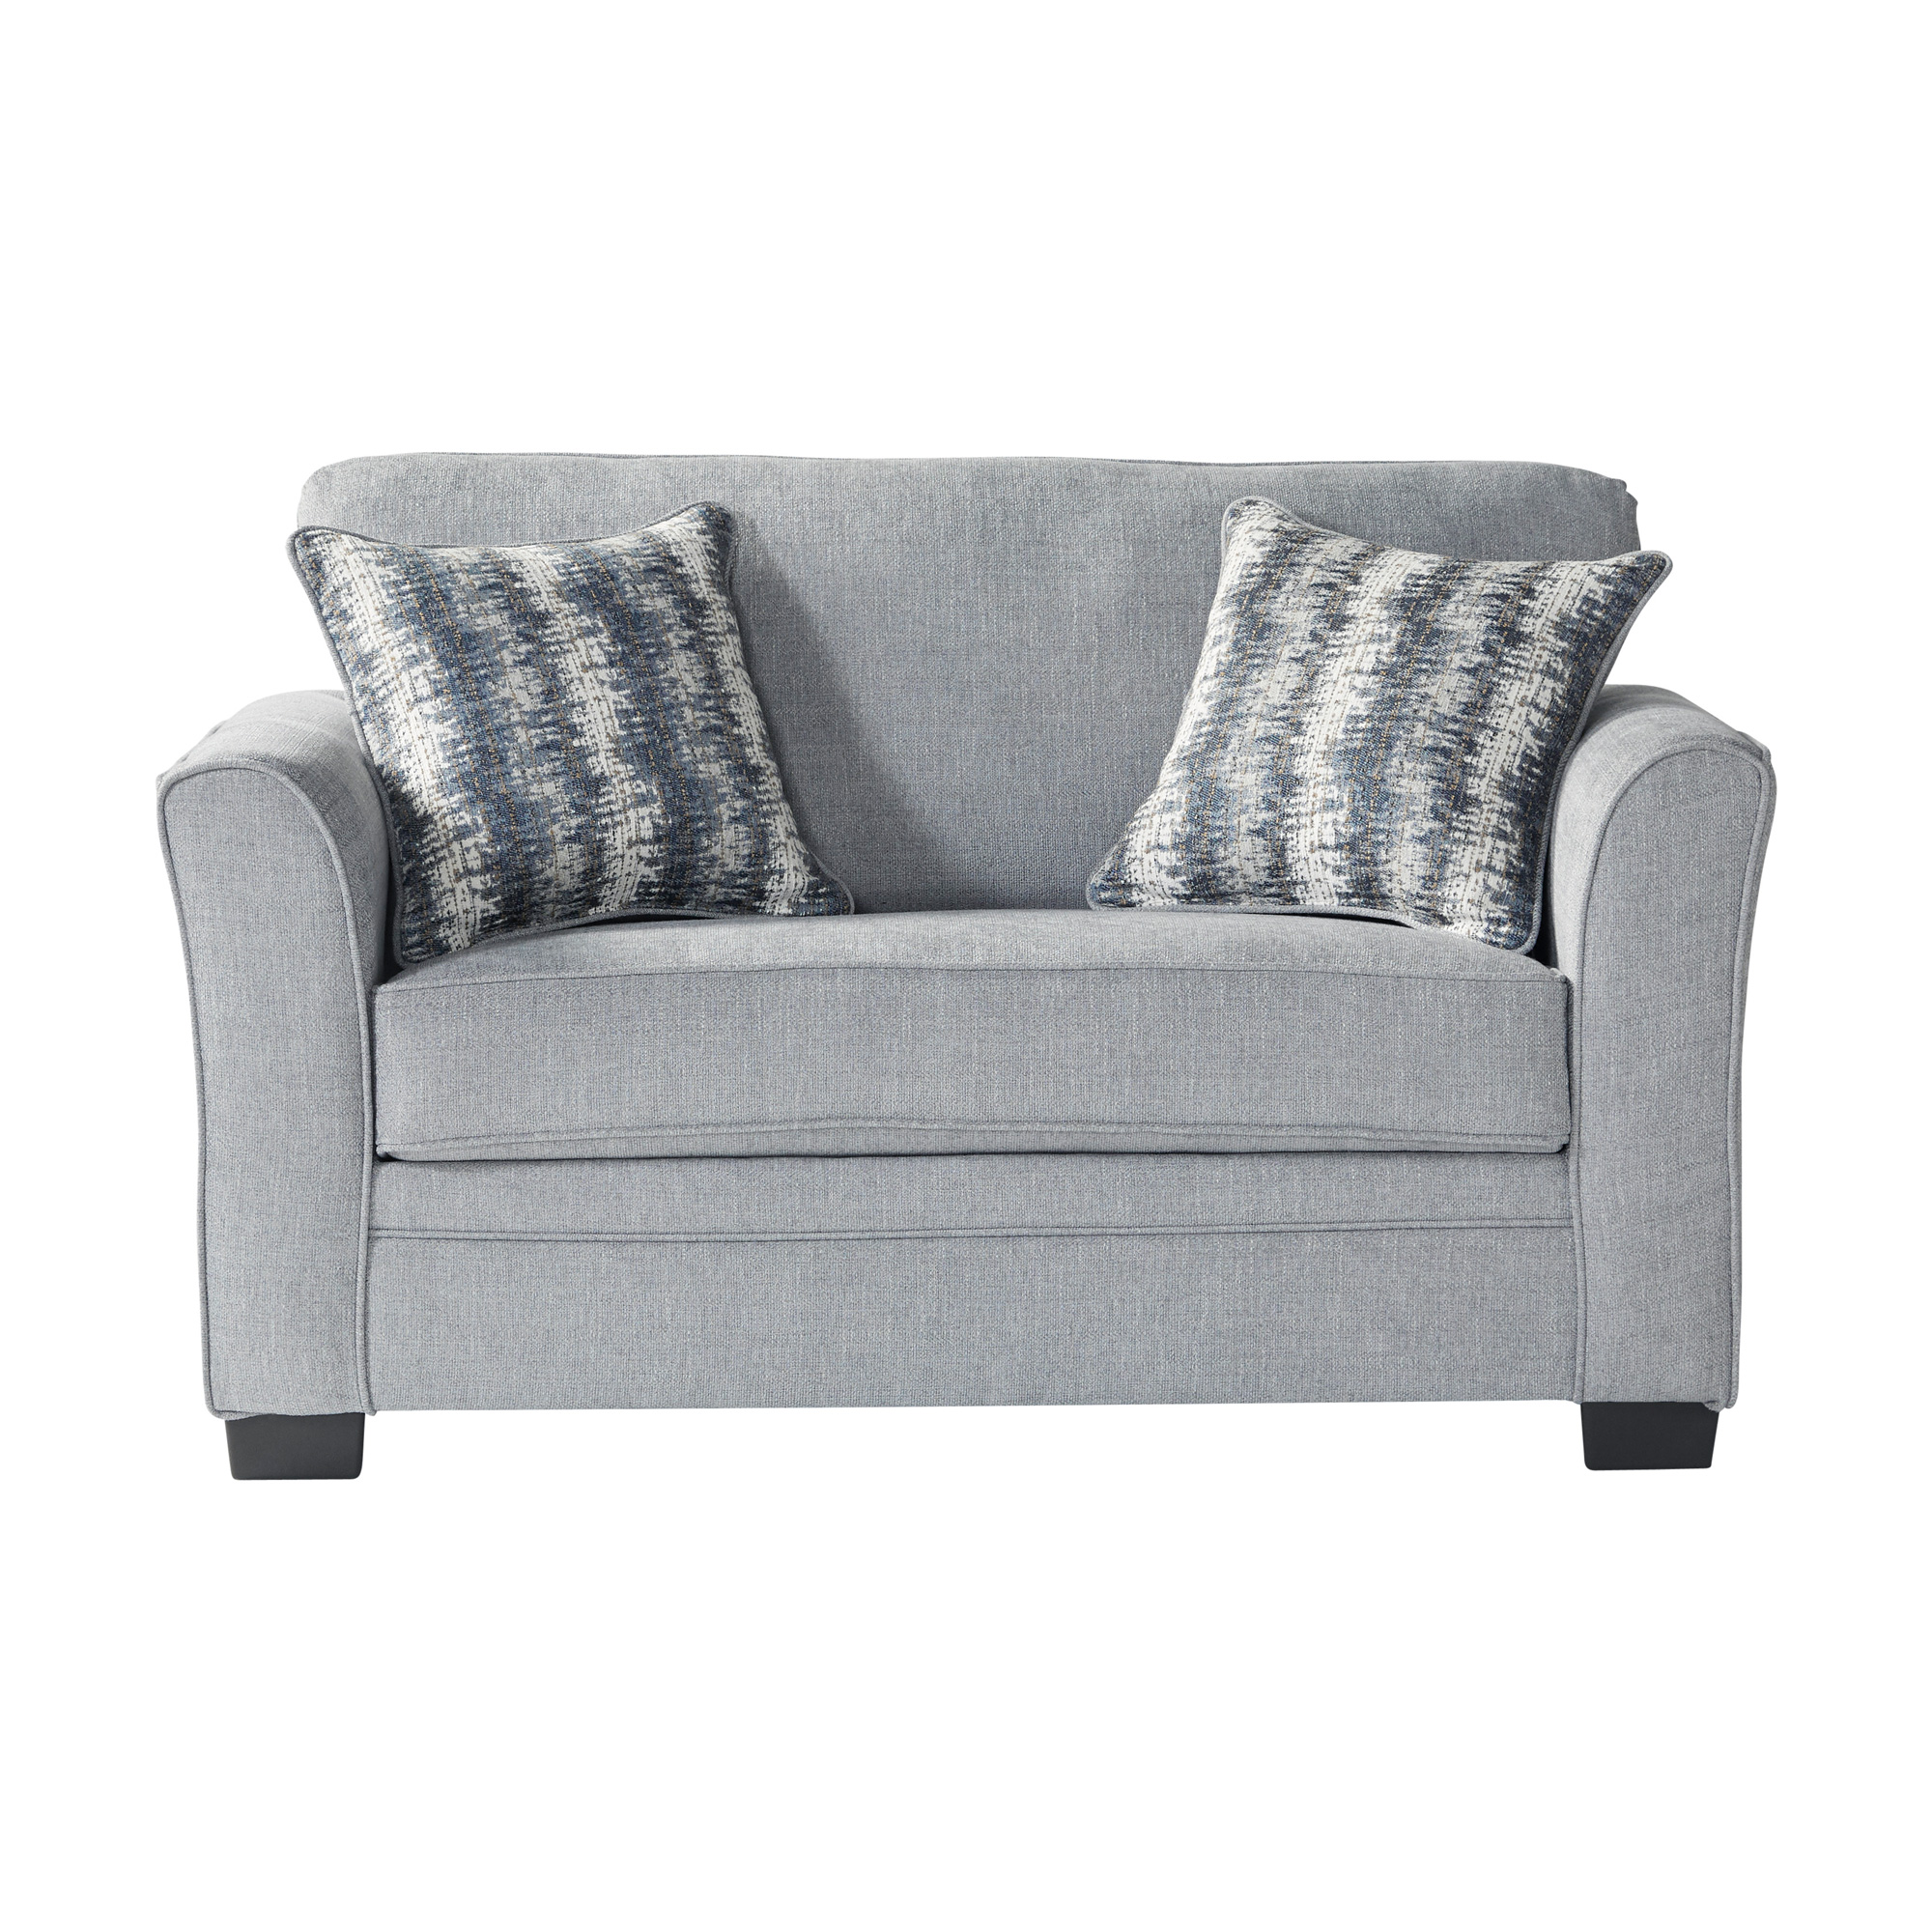 Serta Upholstery By Hughes Furniture | Bolster Mist Twin Sleeper Sofa